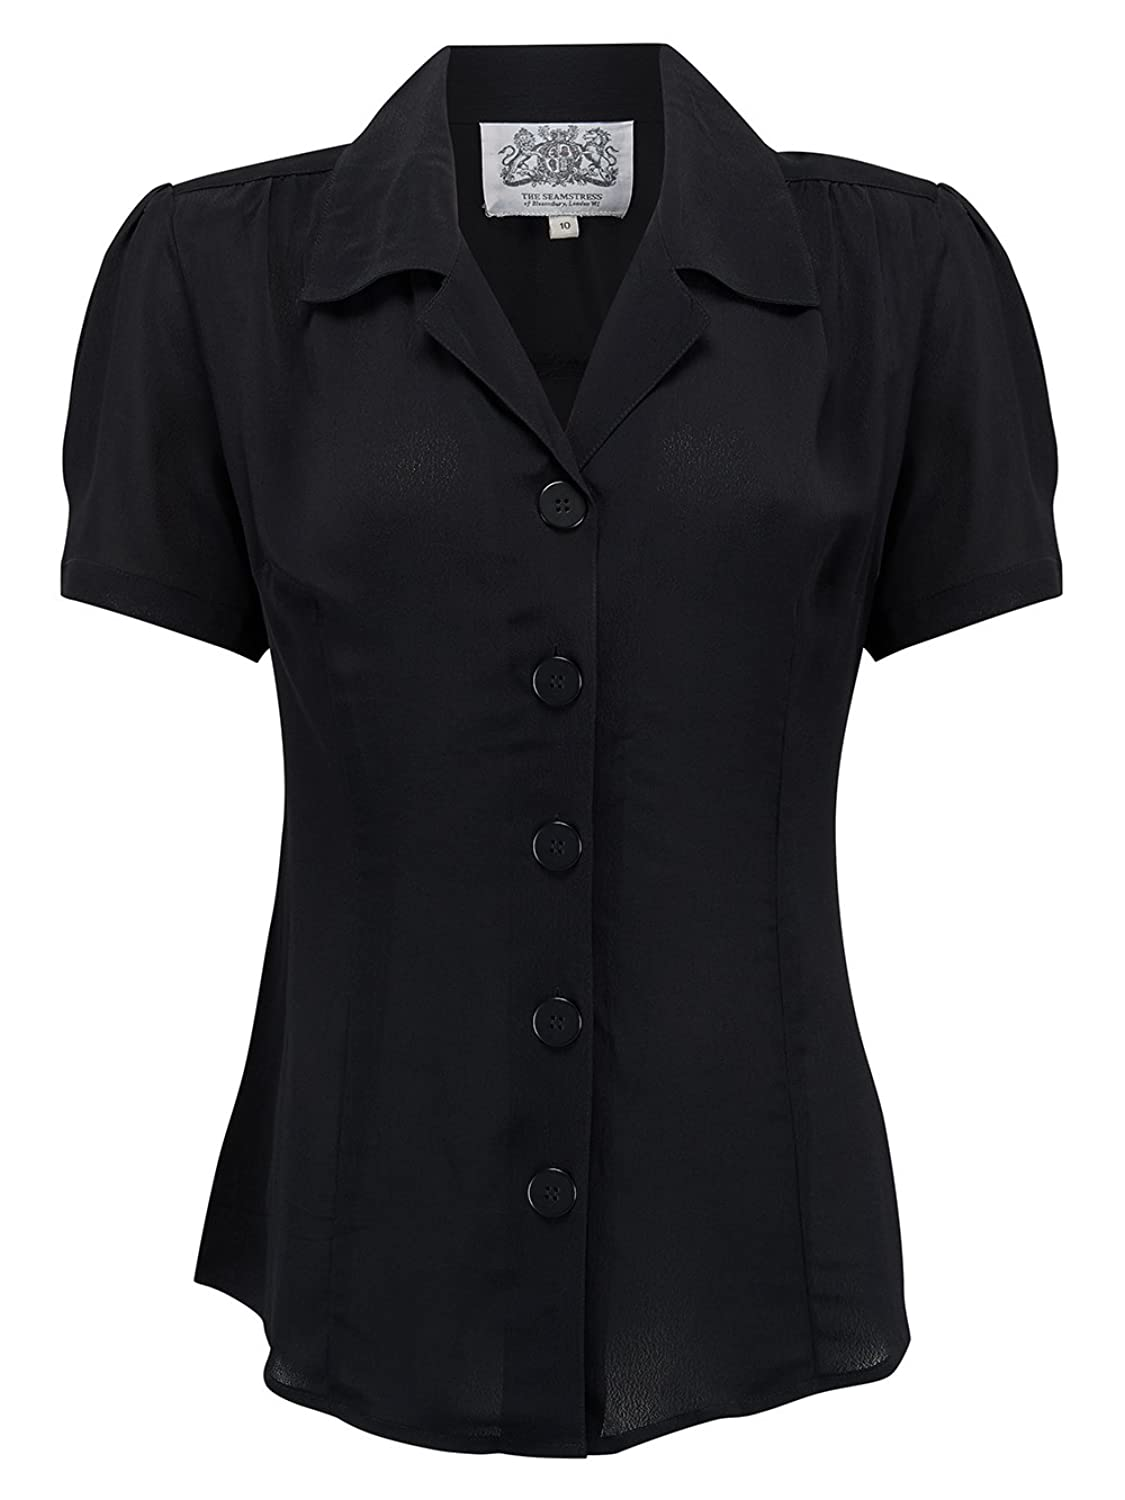 1940s Blouses and Tops 1940s Vintage Grace Blouse in Black by The Seamstress of Bloomsbury £39.00 AT vintagedancer.com